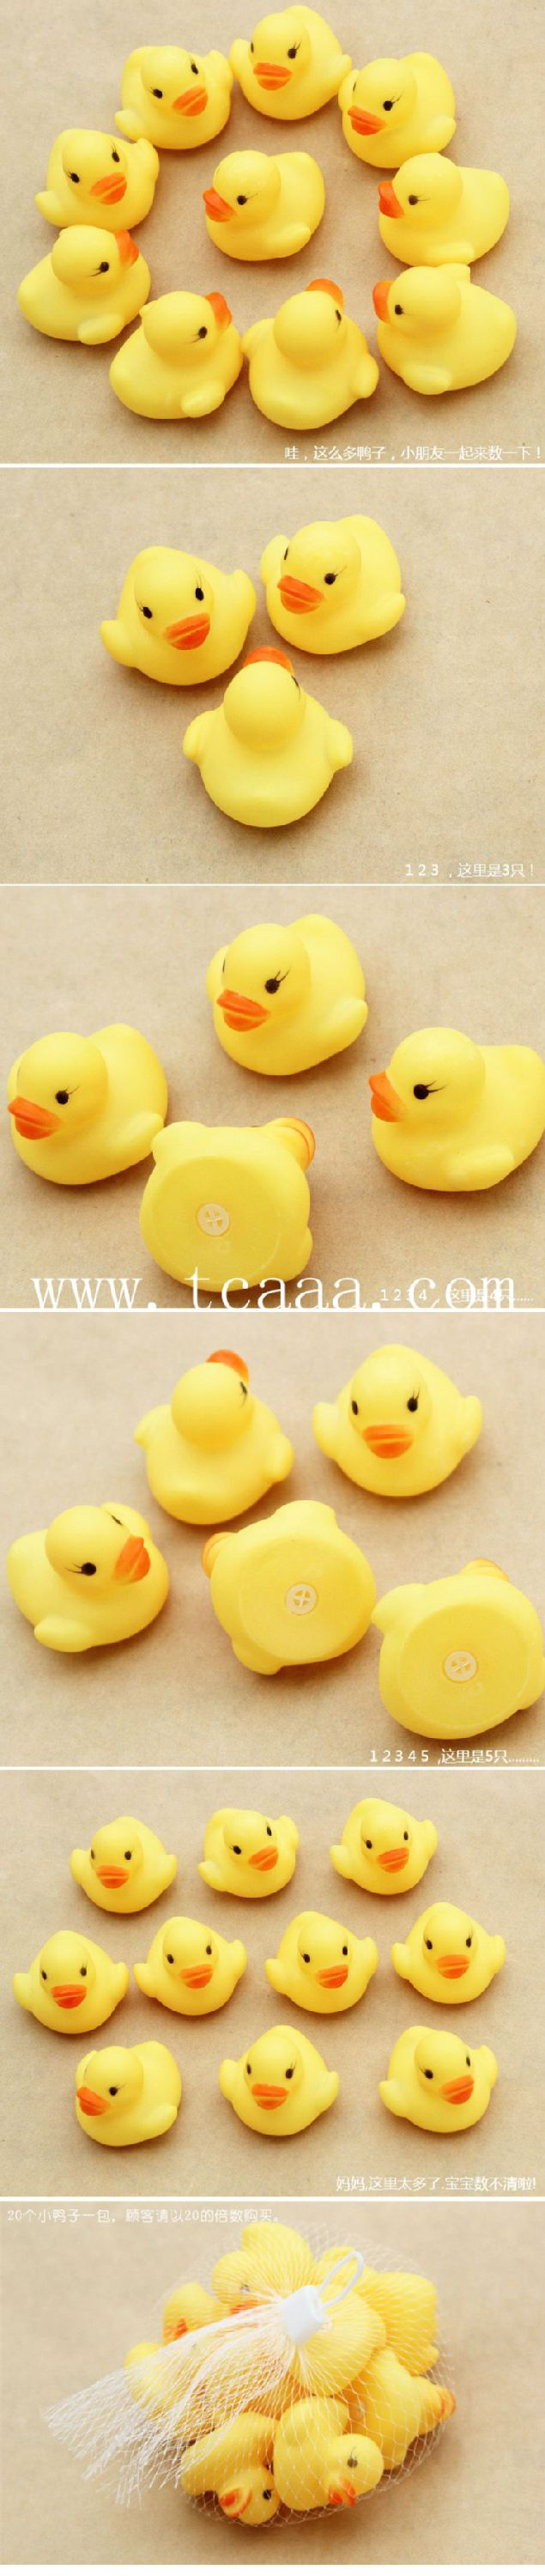 Duck Sex Toys 53